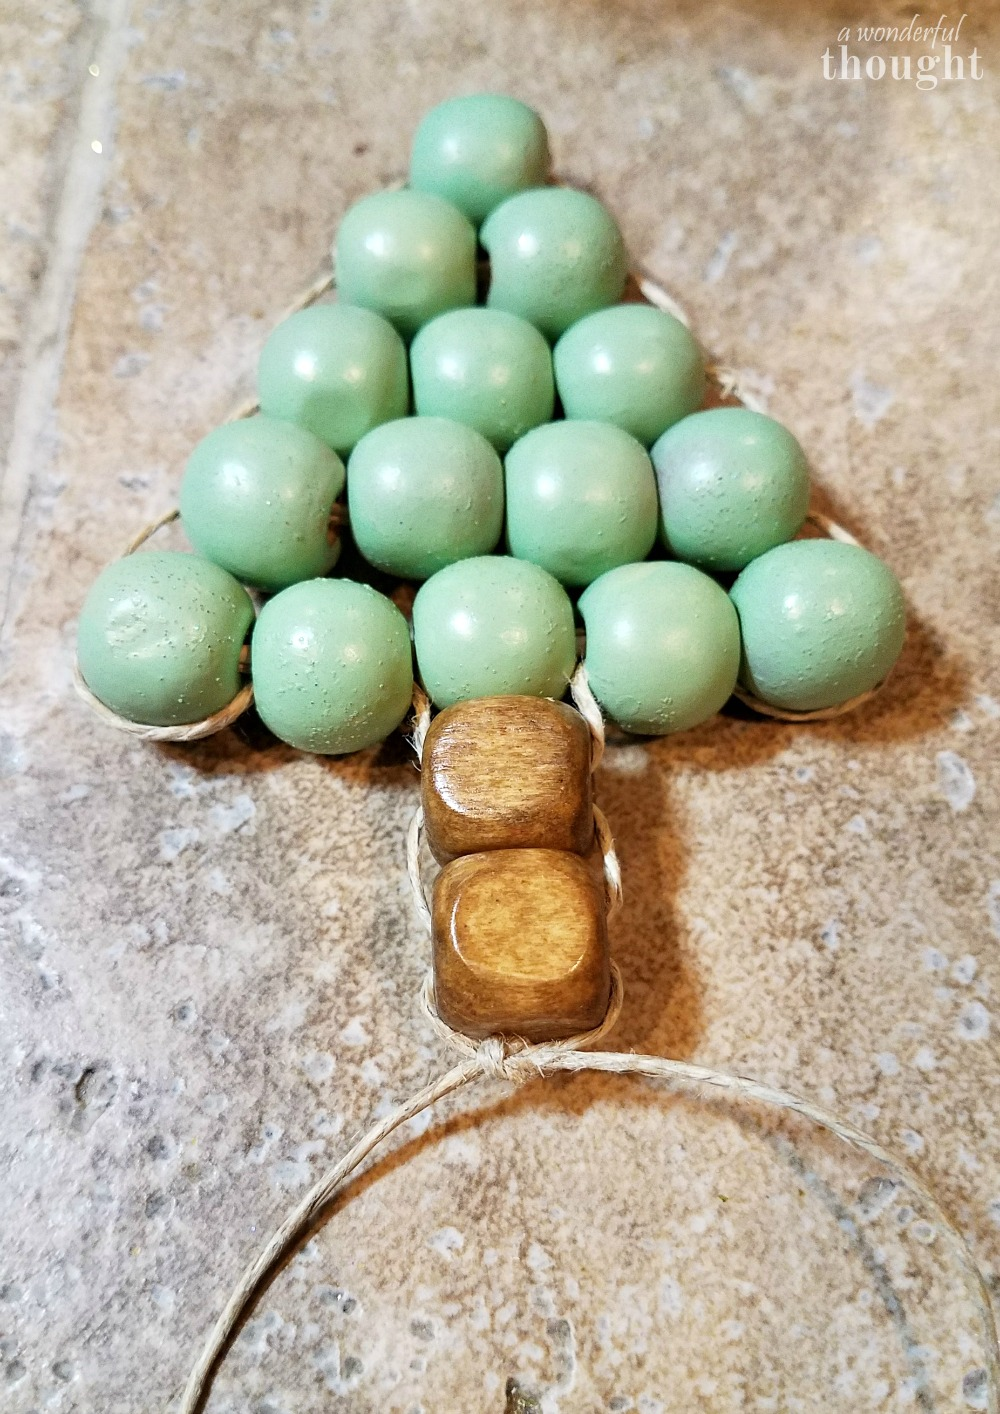 DIY Ornament Wooden Bead Christmas Tree #diyornament #christmasornament #ornament #awonderfulthought